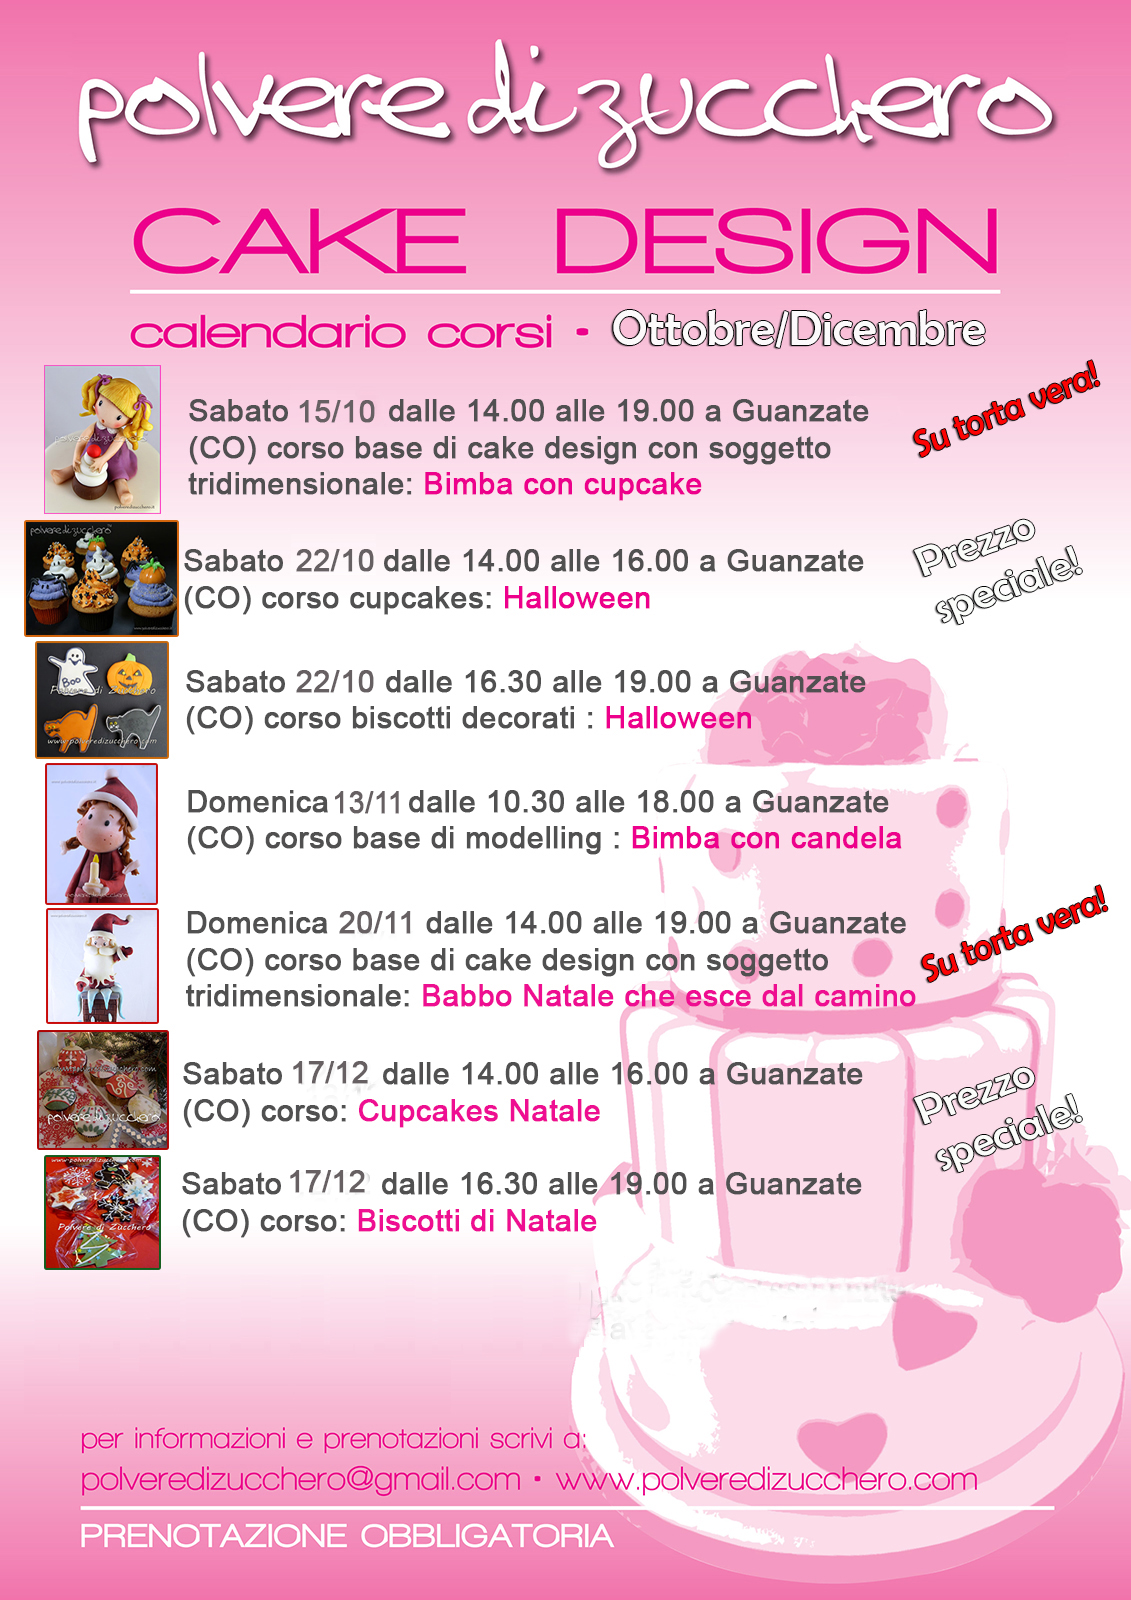 calendario corsi cake design sugar art pasta di zucchero torte decorate biscotti decorati cupcake